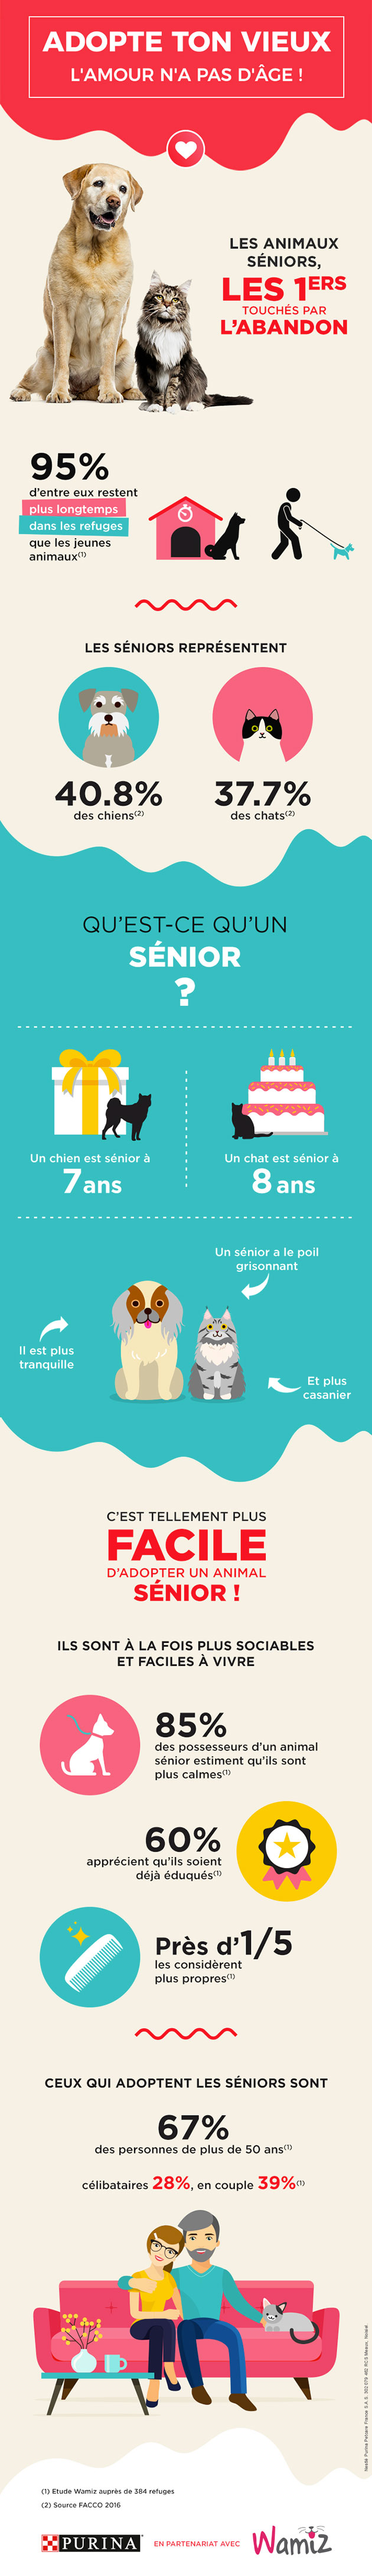 Infographie adopter vieux chien